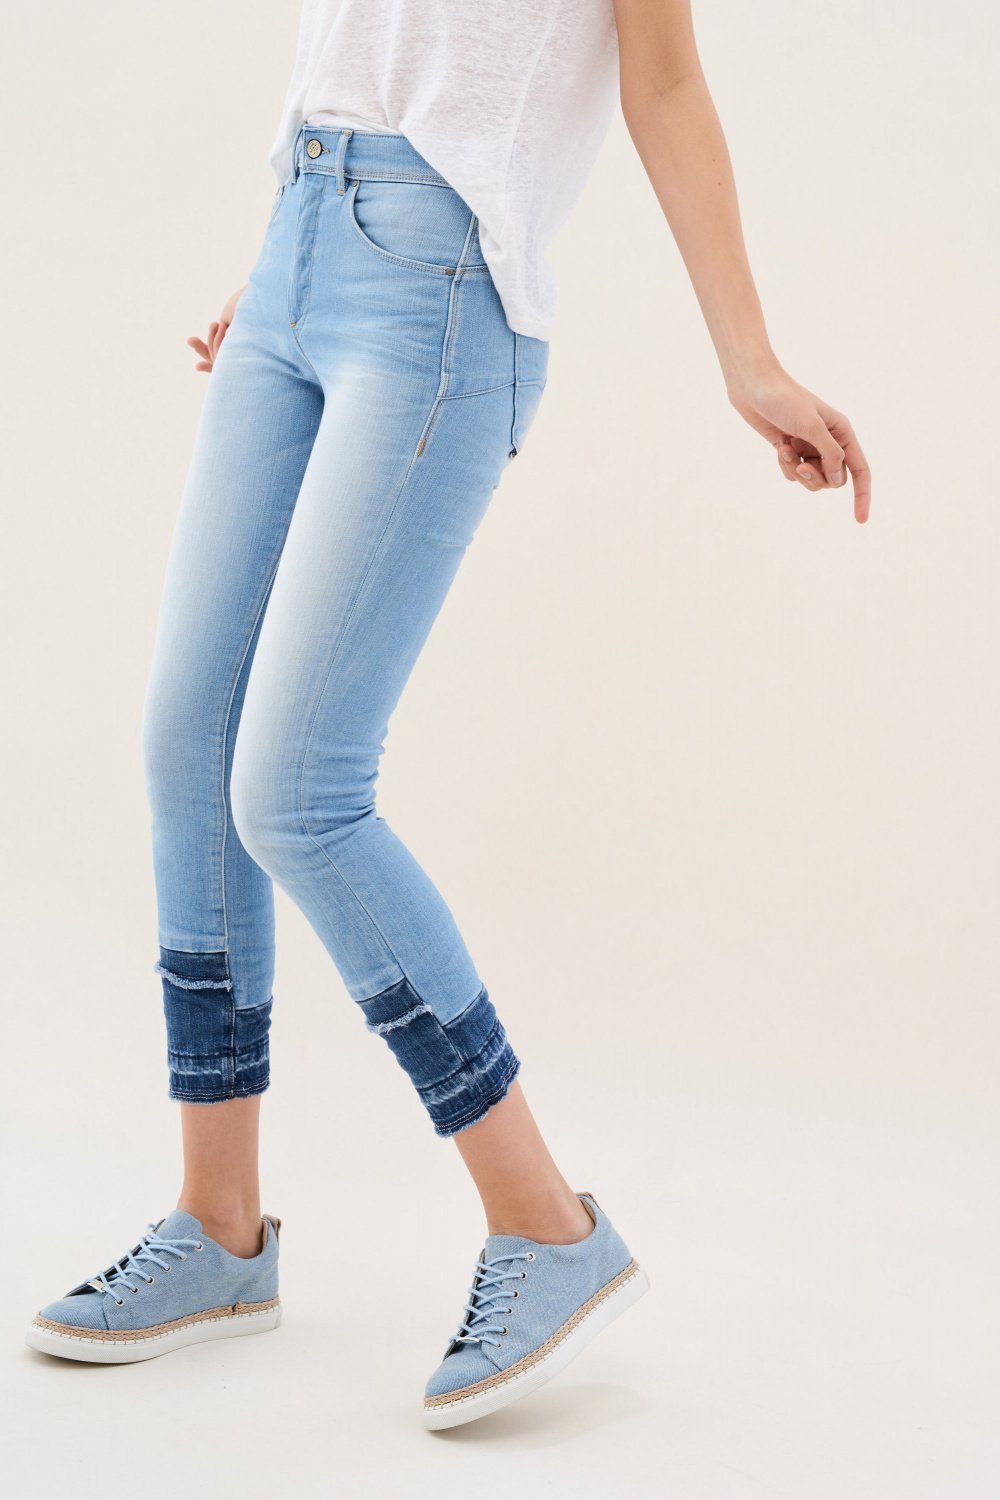 Jeans Secret Glamour premium wash - Salsa